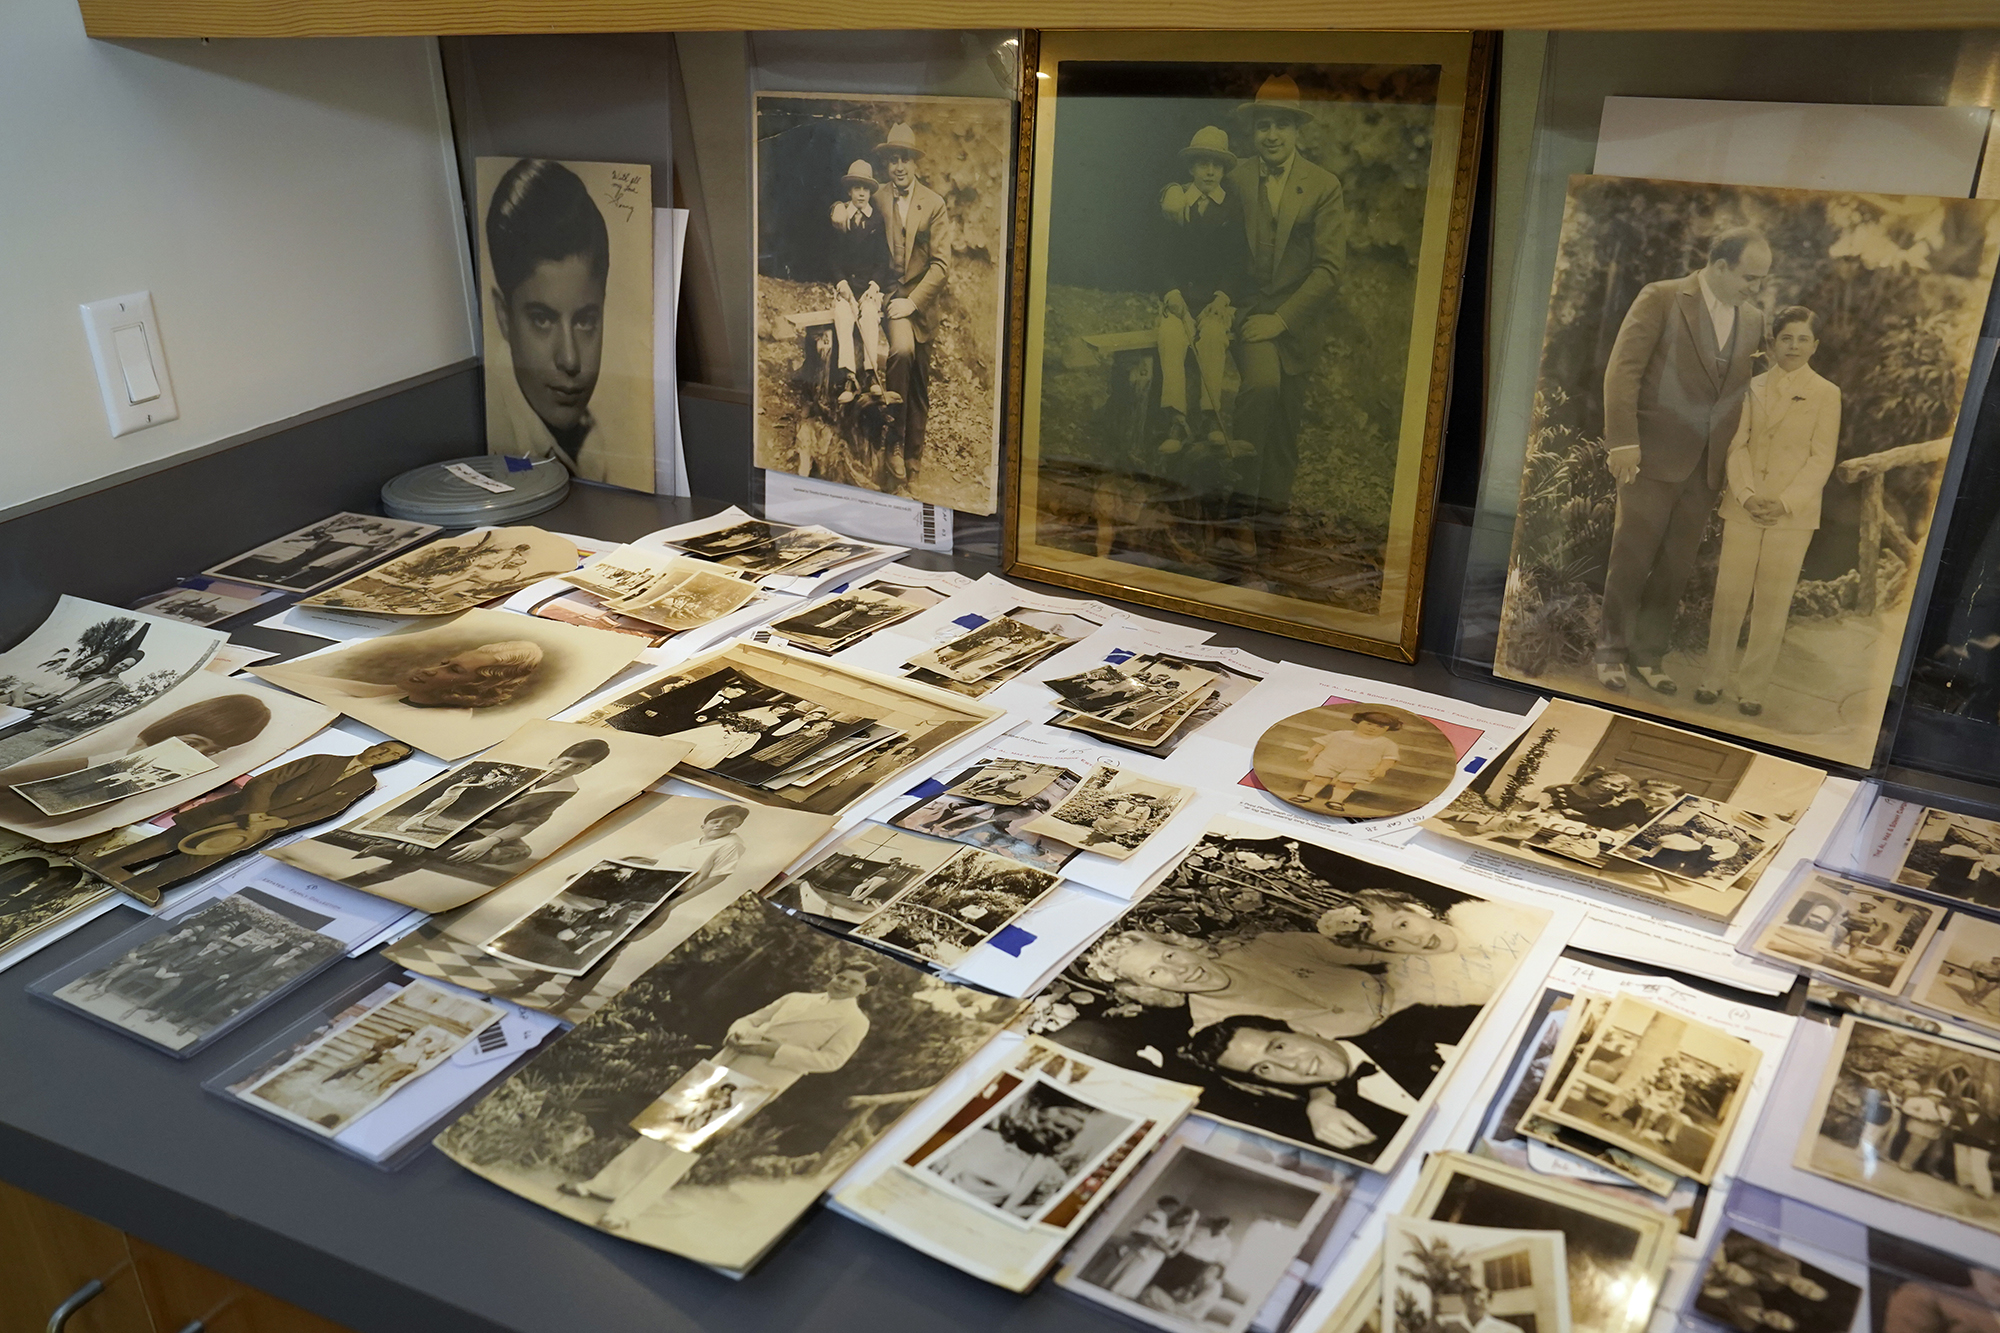 A collection of photographs from the estate of mob boss Al Capone is displayed at Witherell's Auction House in Sacramento, California.